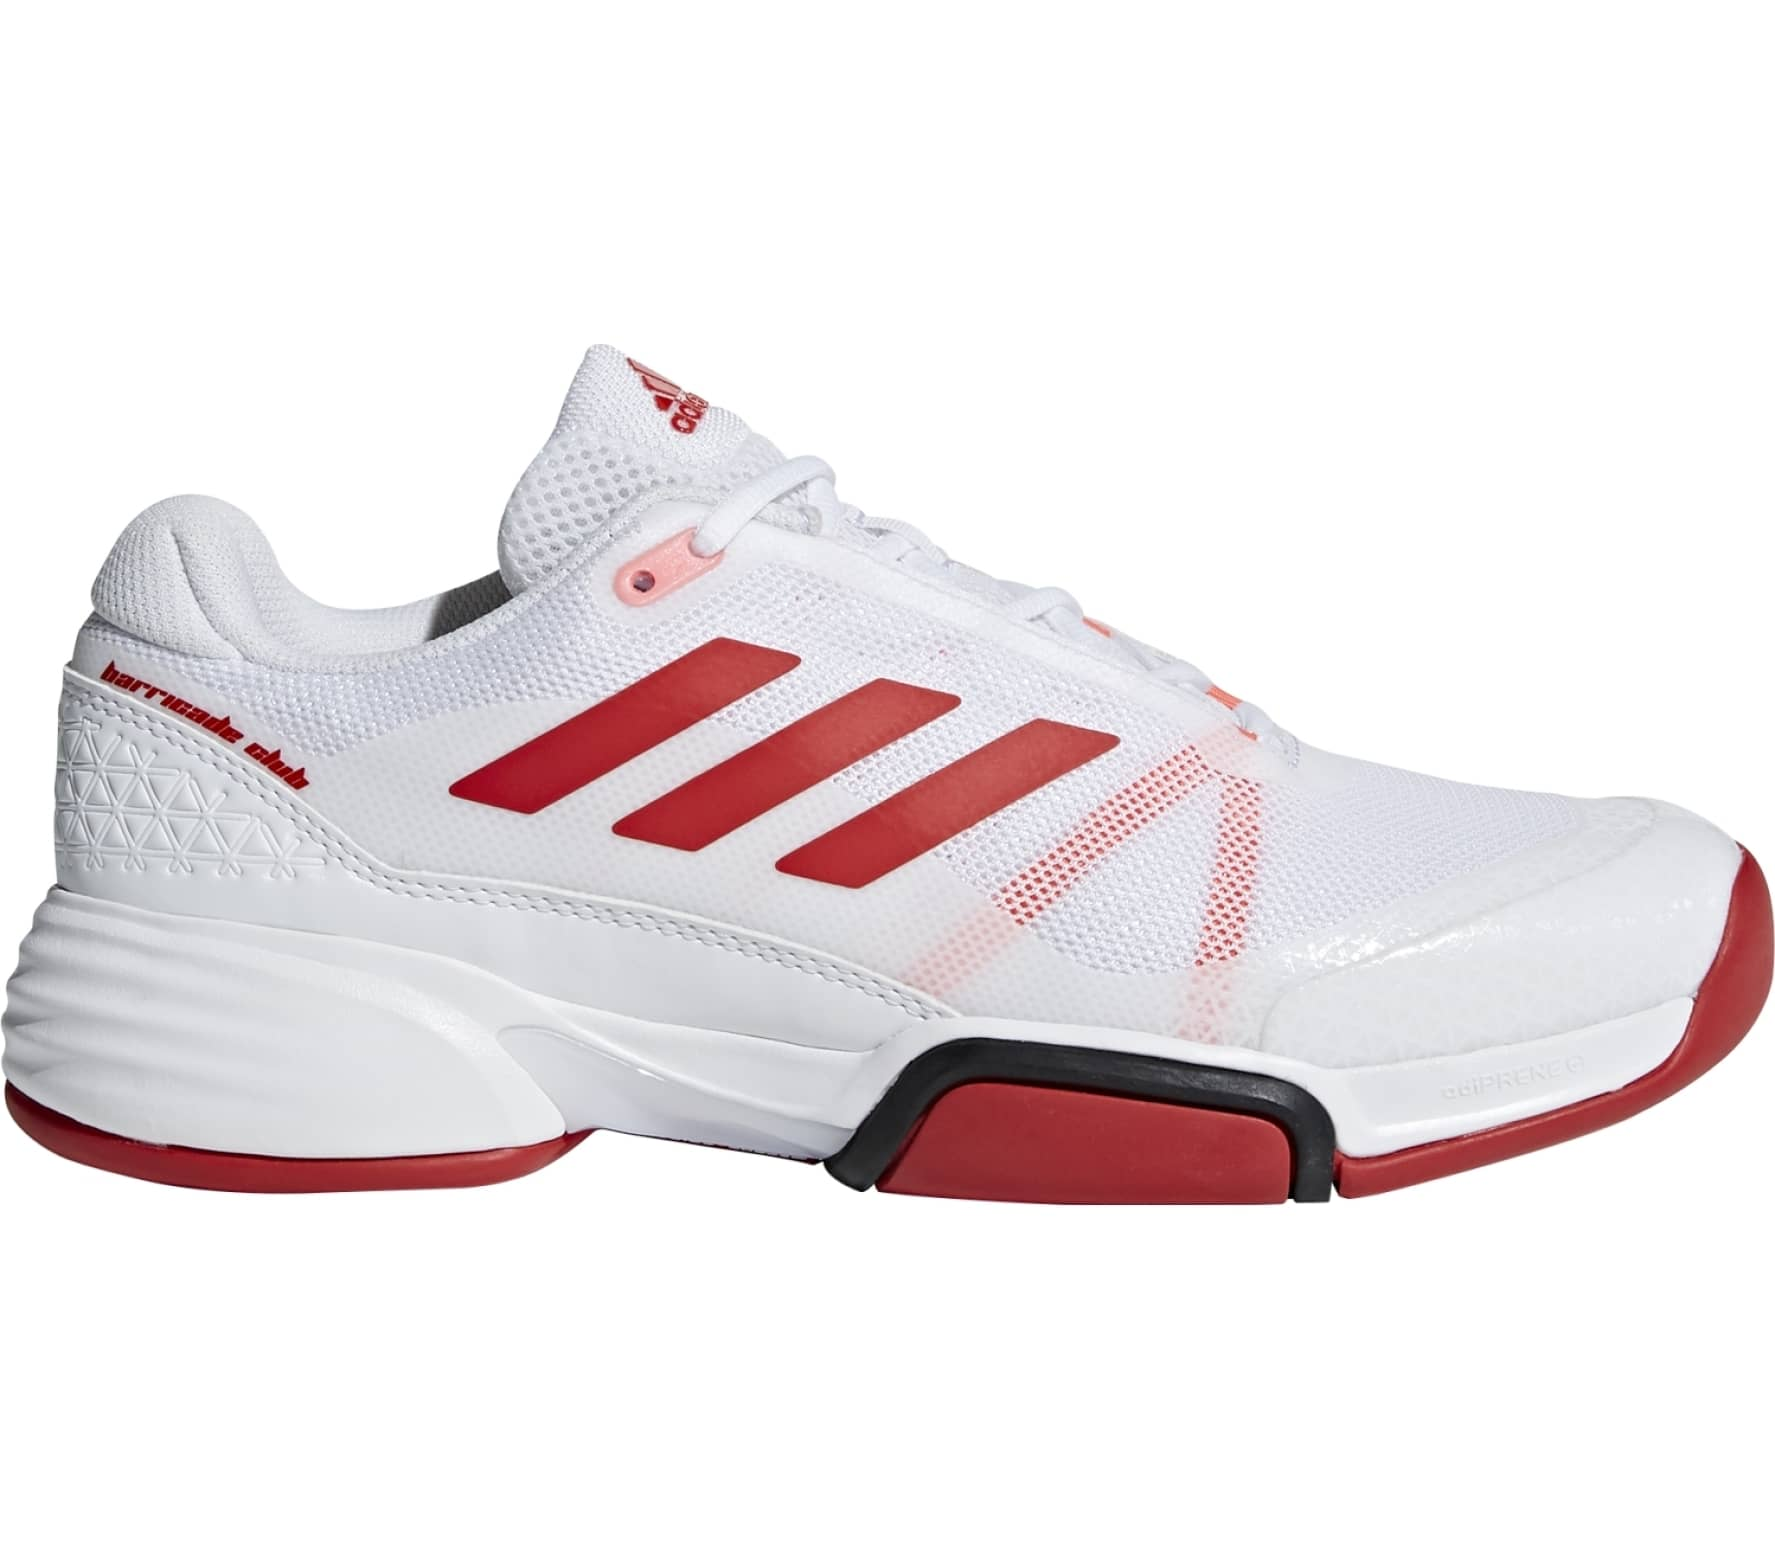 adidas performance - Barricade Club Carpet men s tennis shoes (white ... 3358d0258